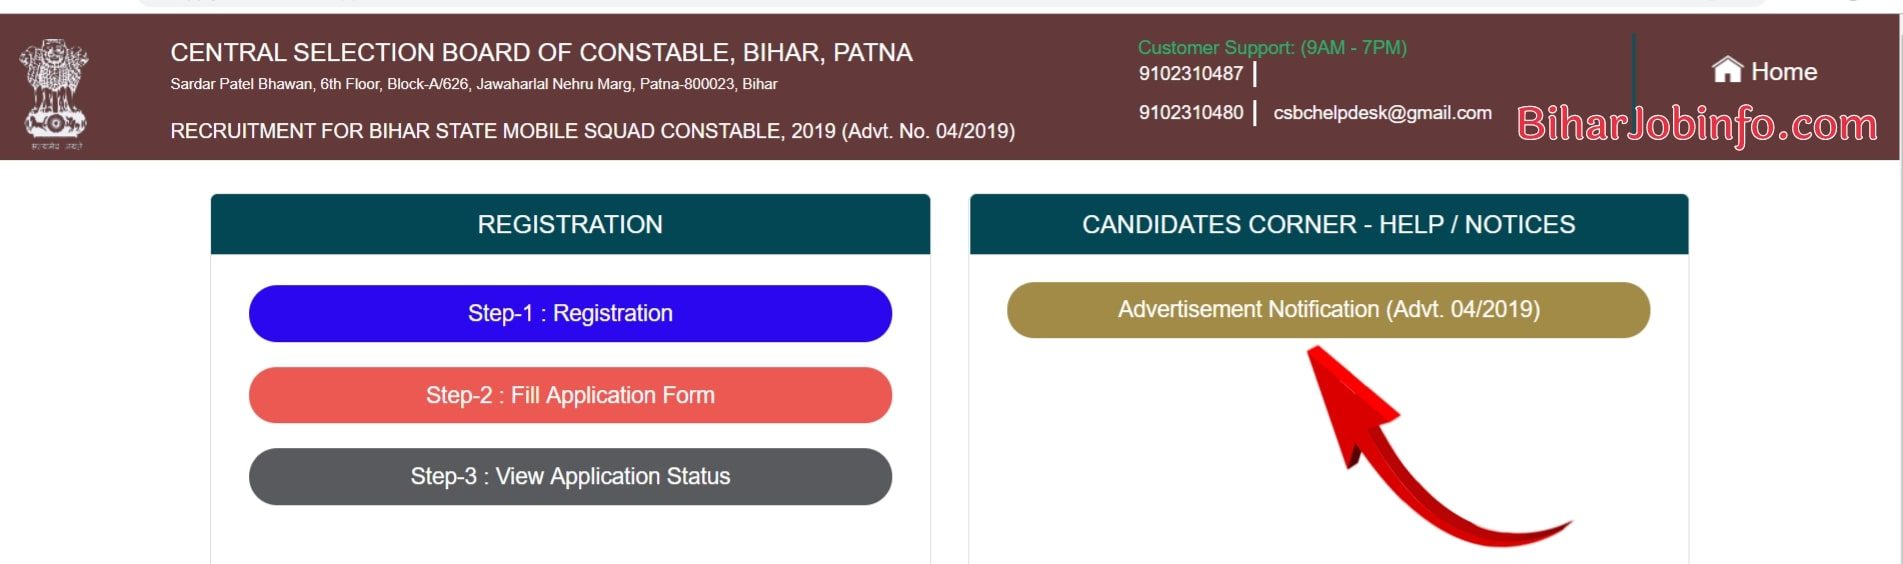 Central selection board of constable online form